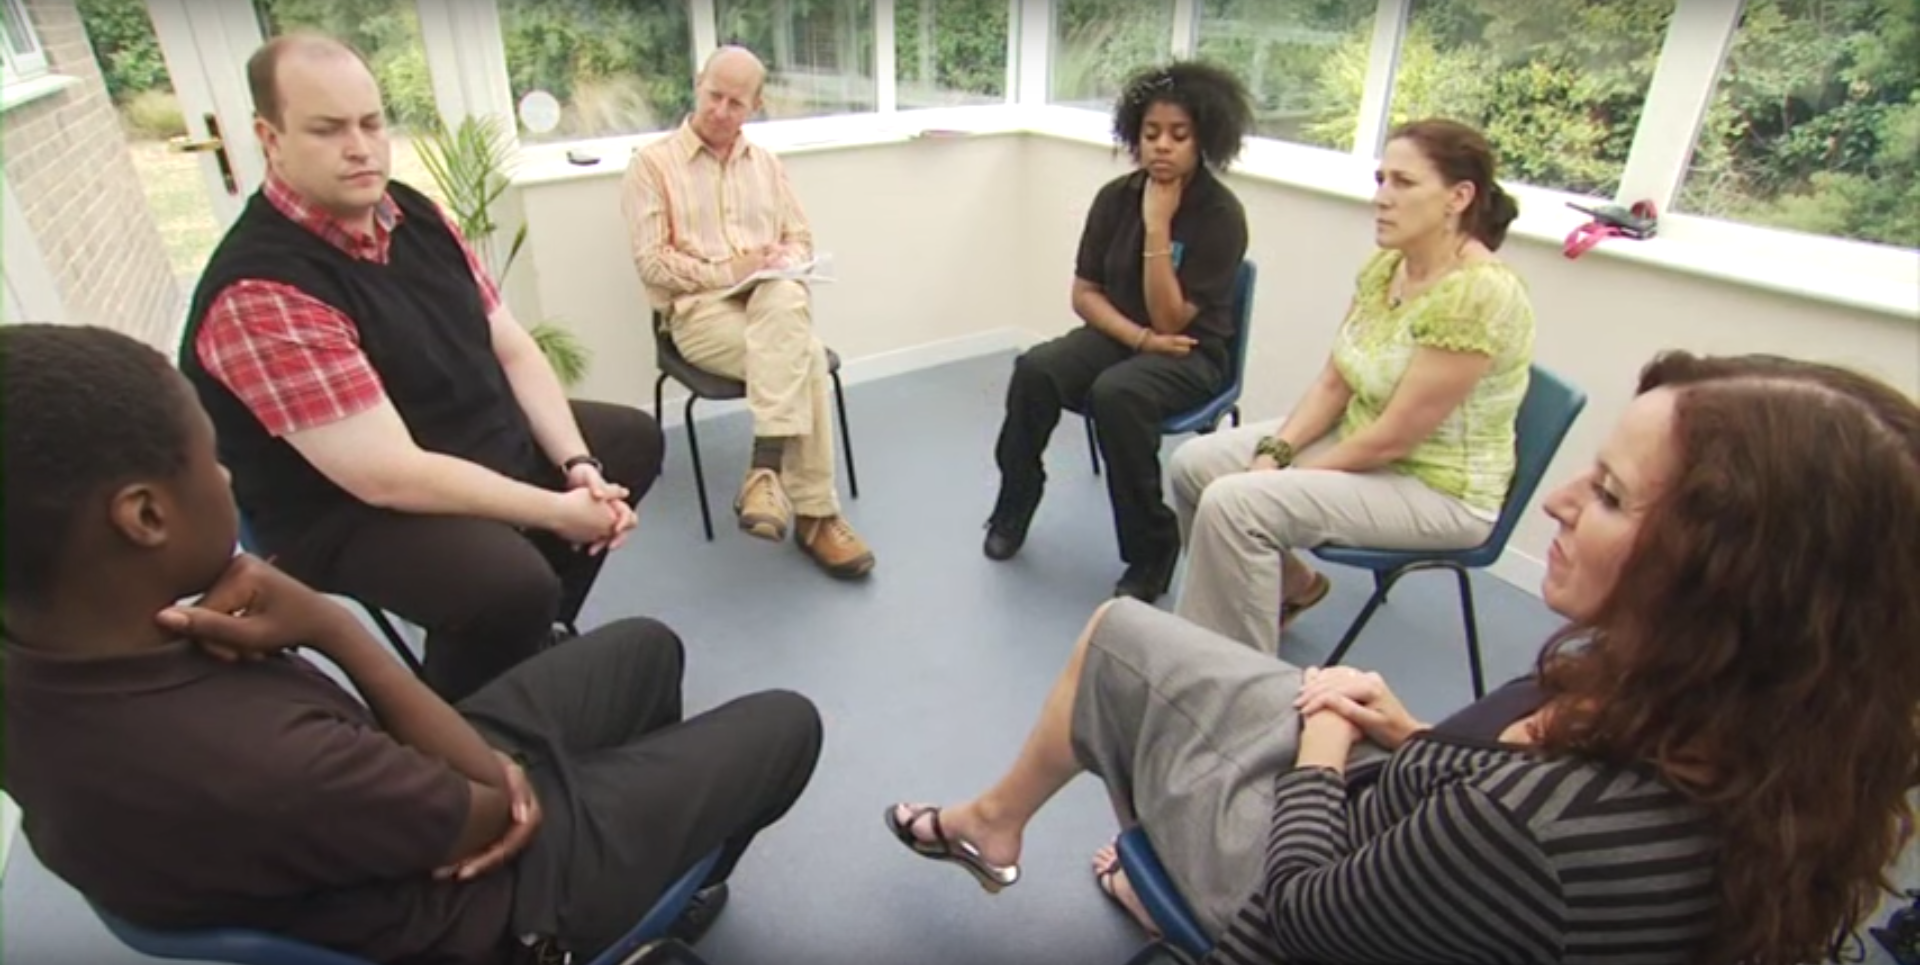 home, restorative approaches, transforming conflict